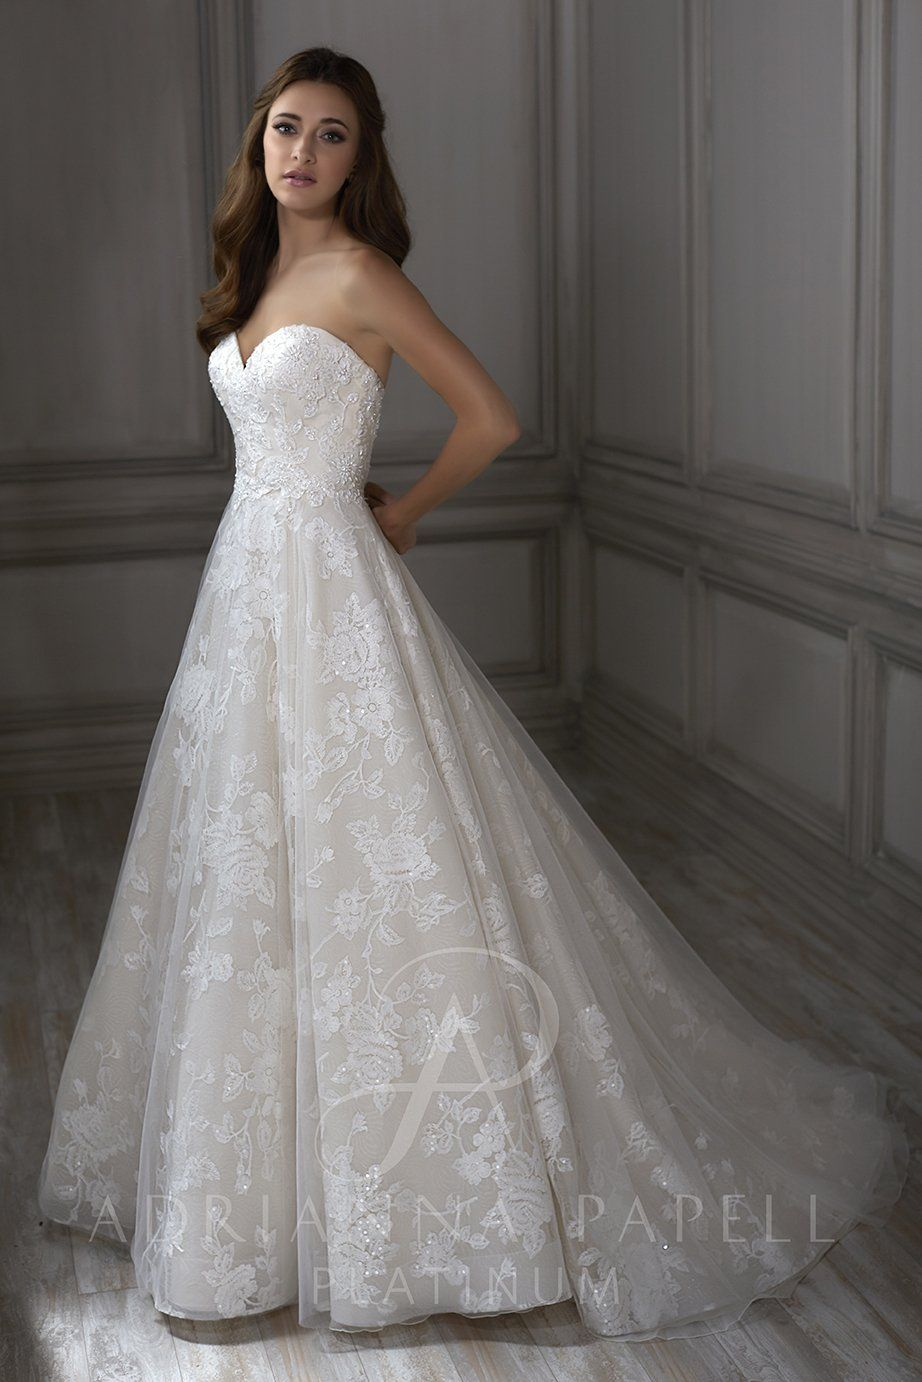 Claire:Floral lace appliques on this romantic lace ball gown ...